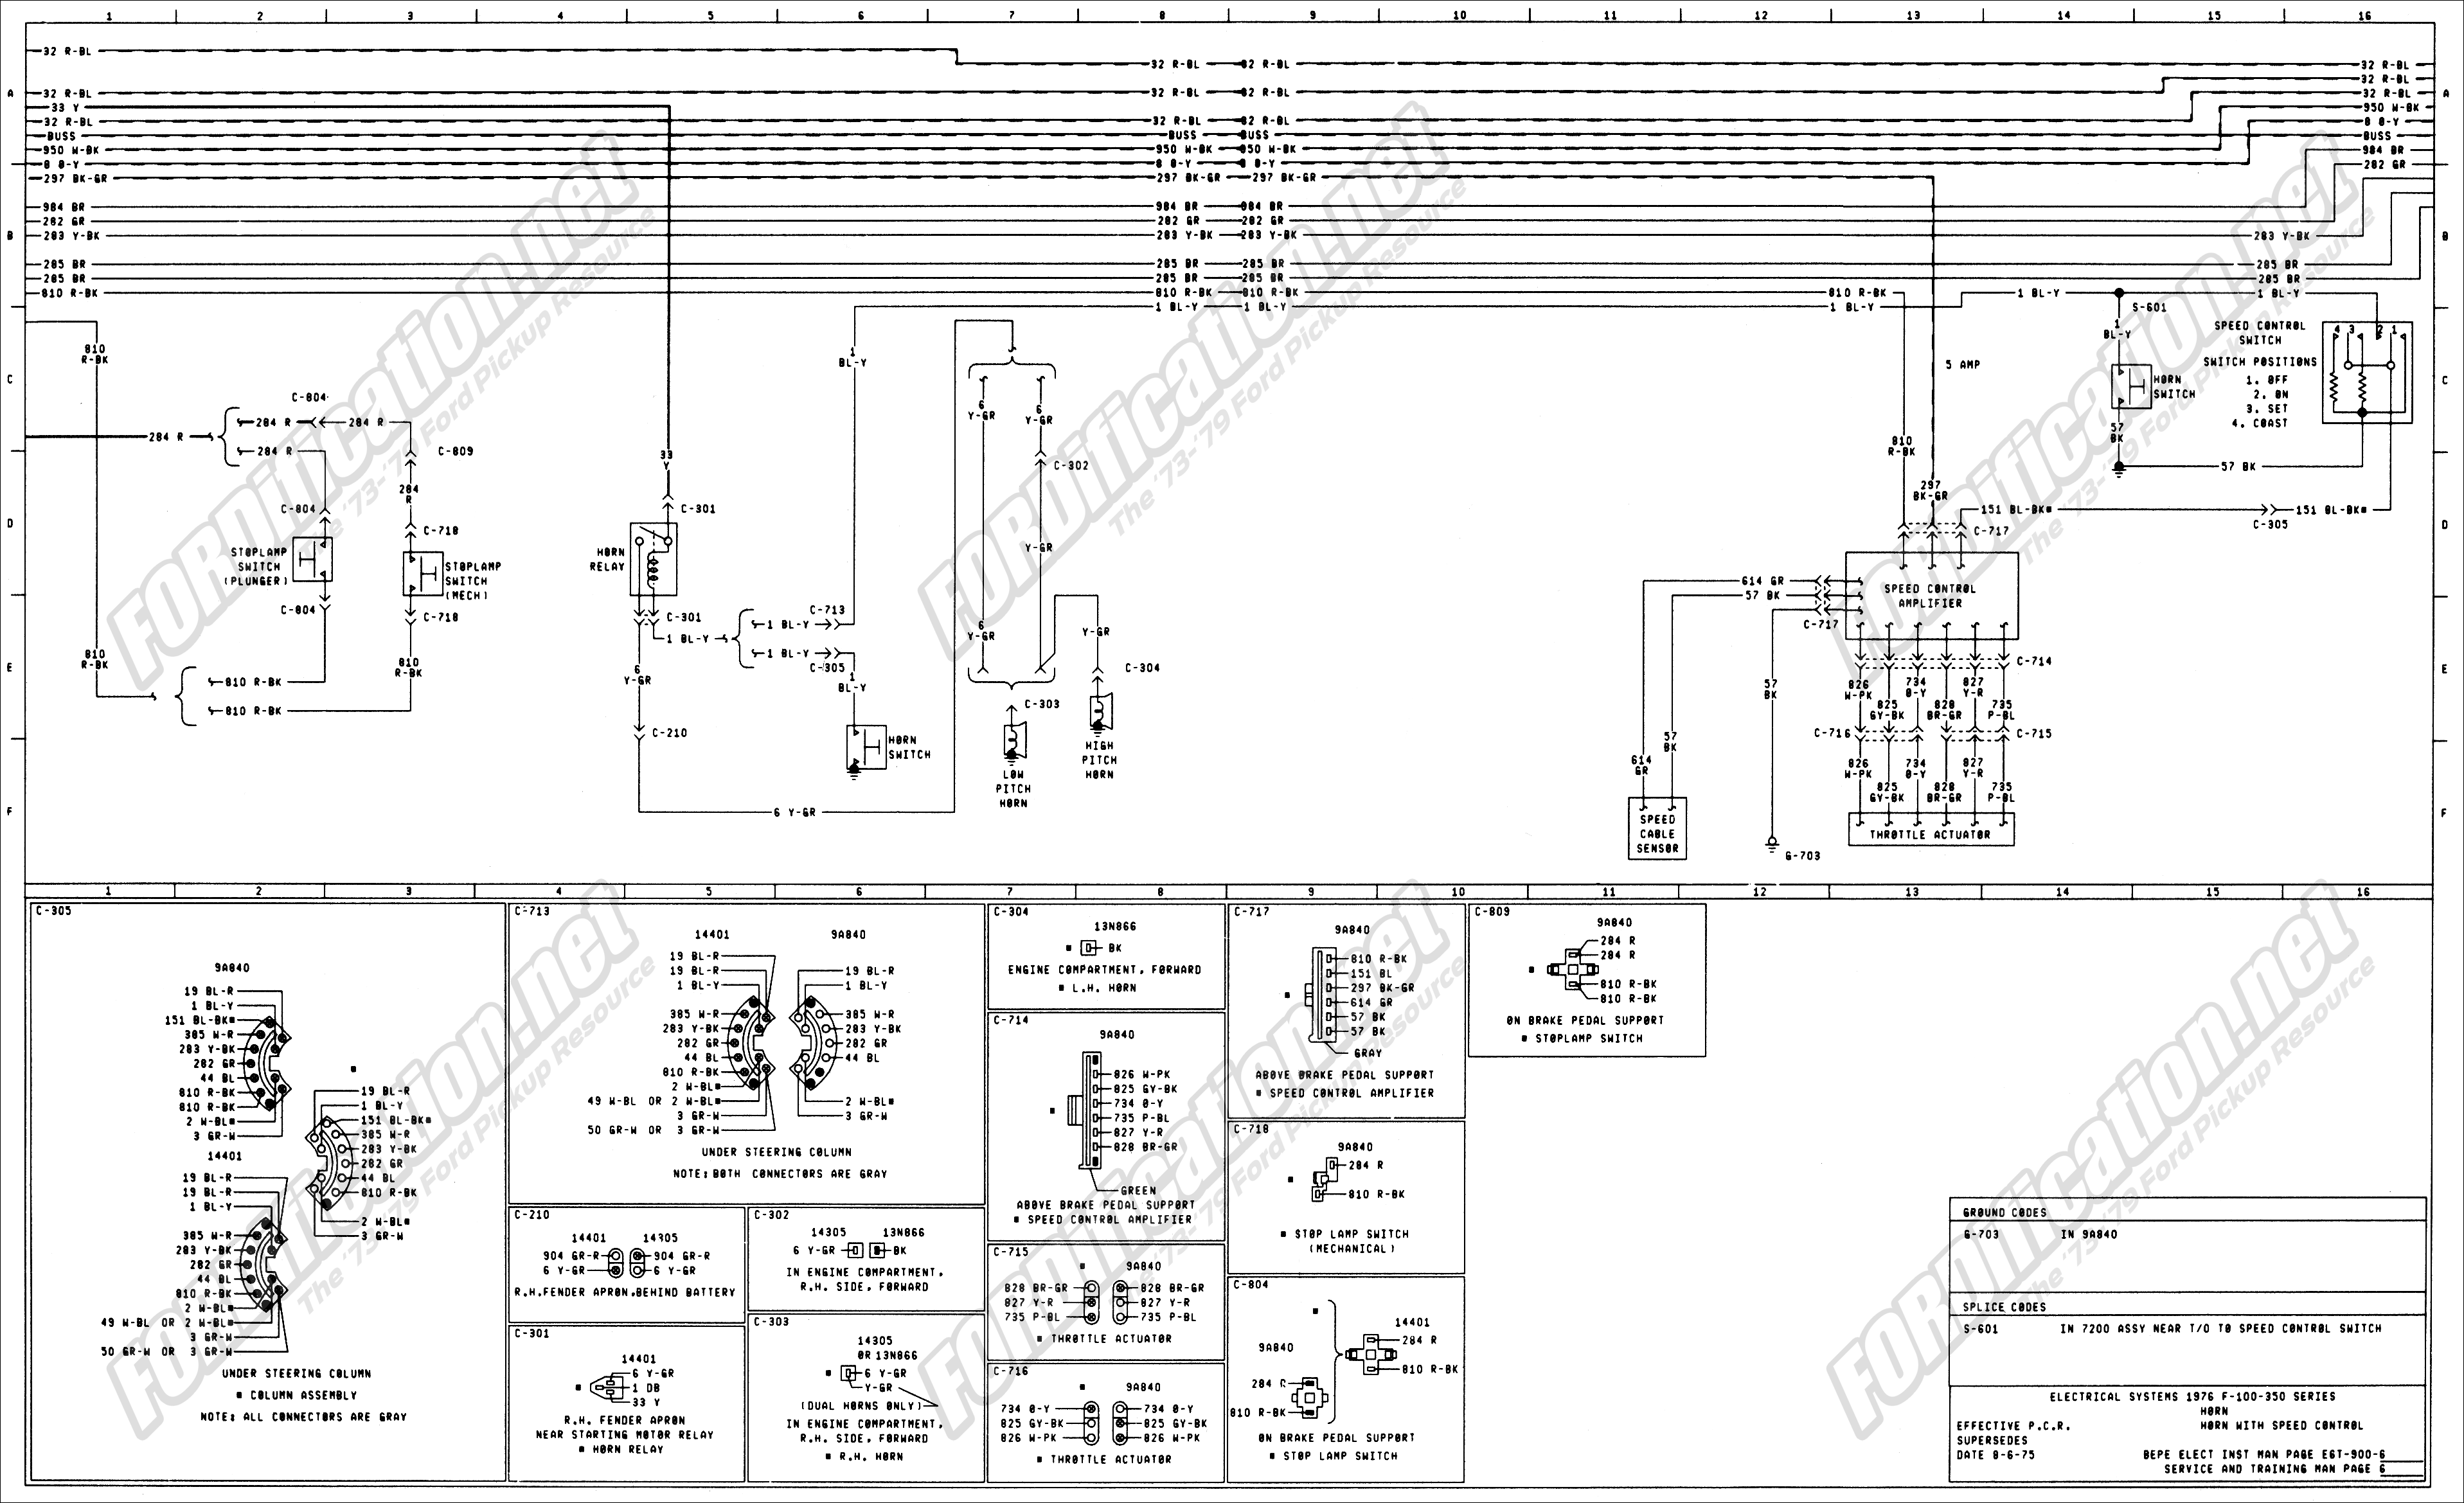 wiring_76master_6of9 1973 1979 ford truck wiring diagrams & schematics fordification net Chevy Ignition Switch Wiring Diagram at bakdesigns.co